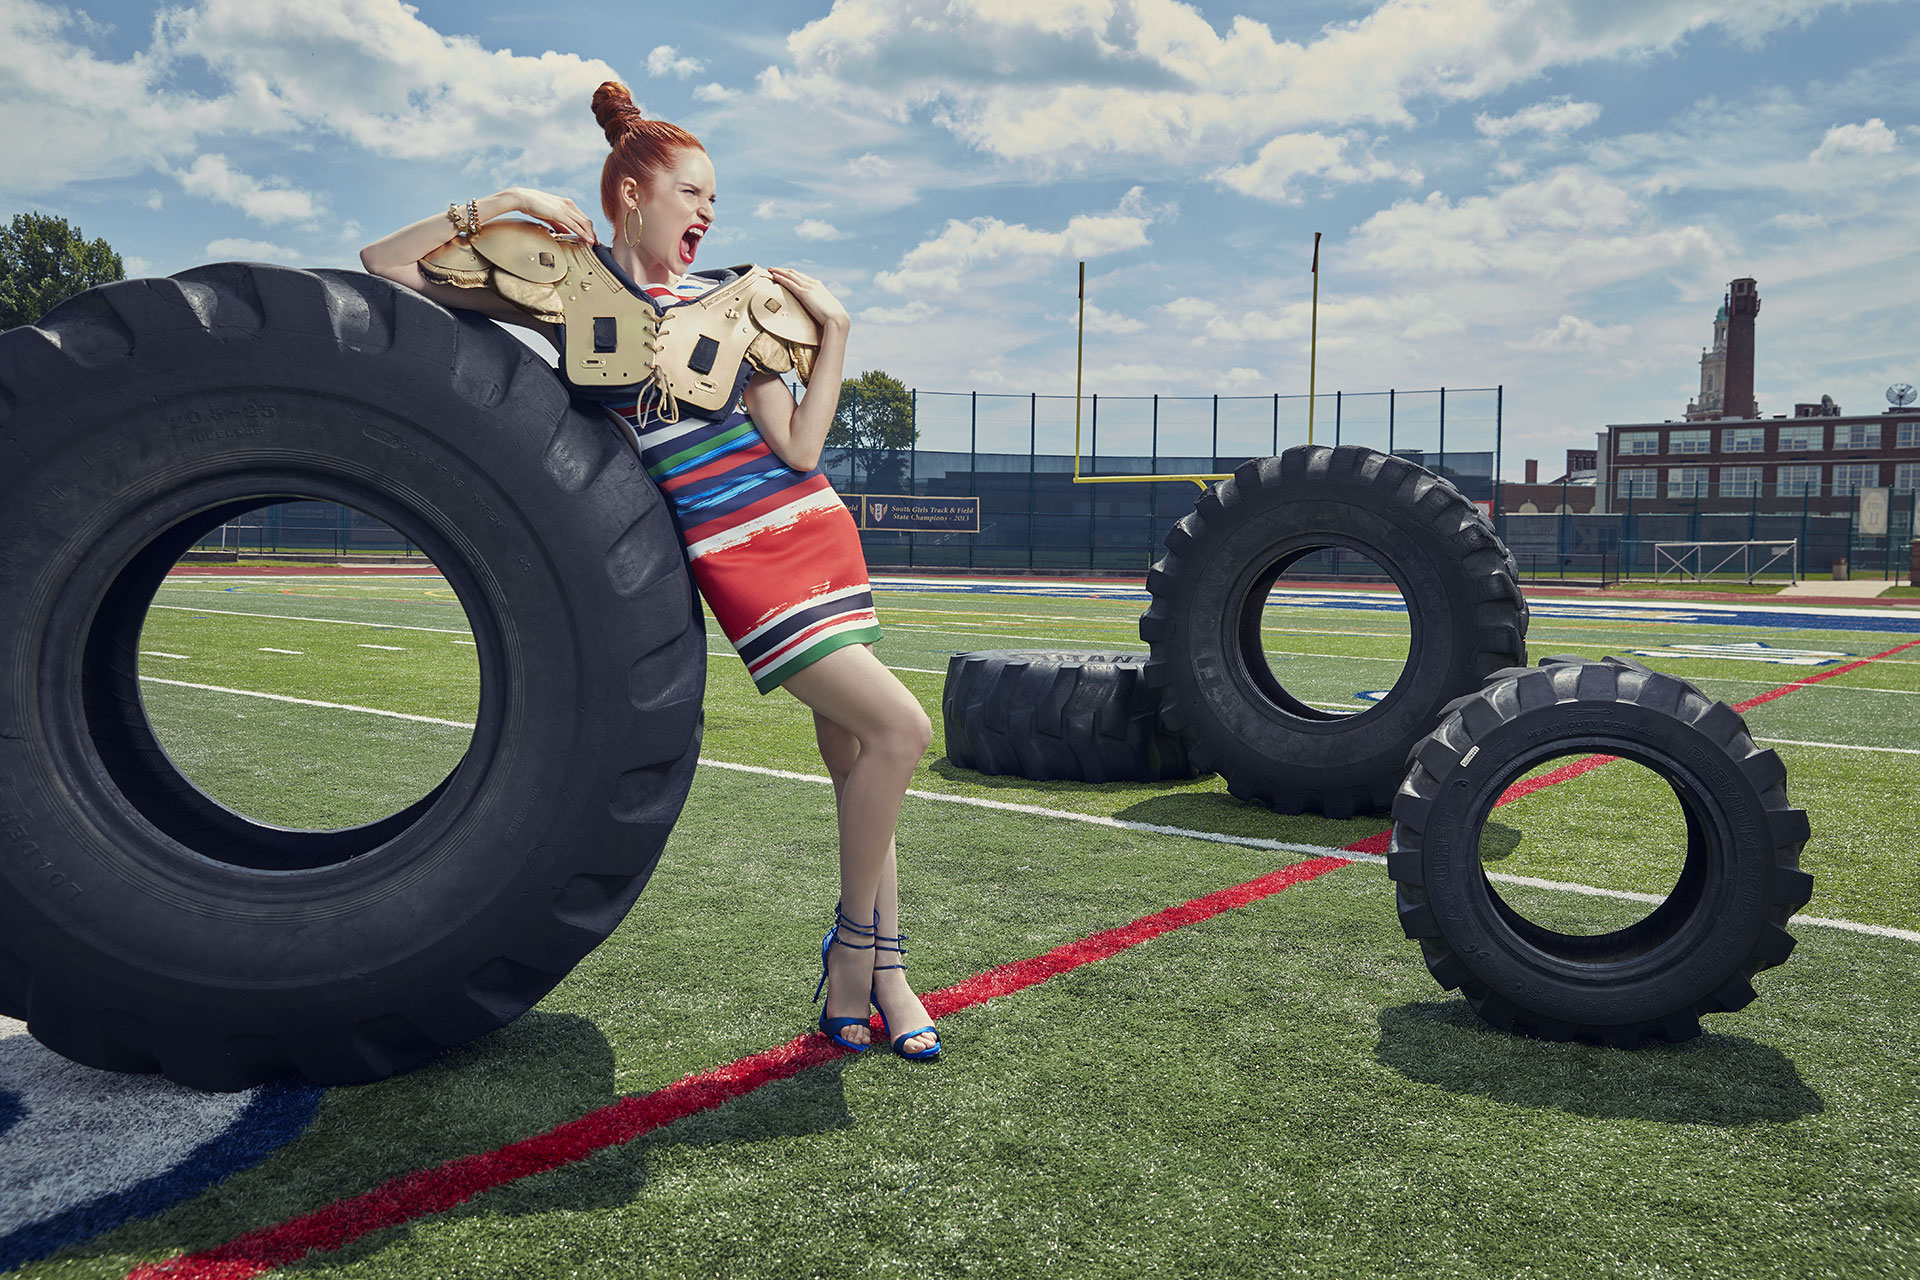 4_Tires_lians_jadan_fashion_editorial